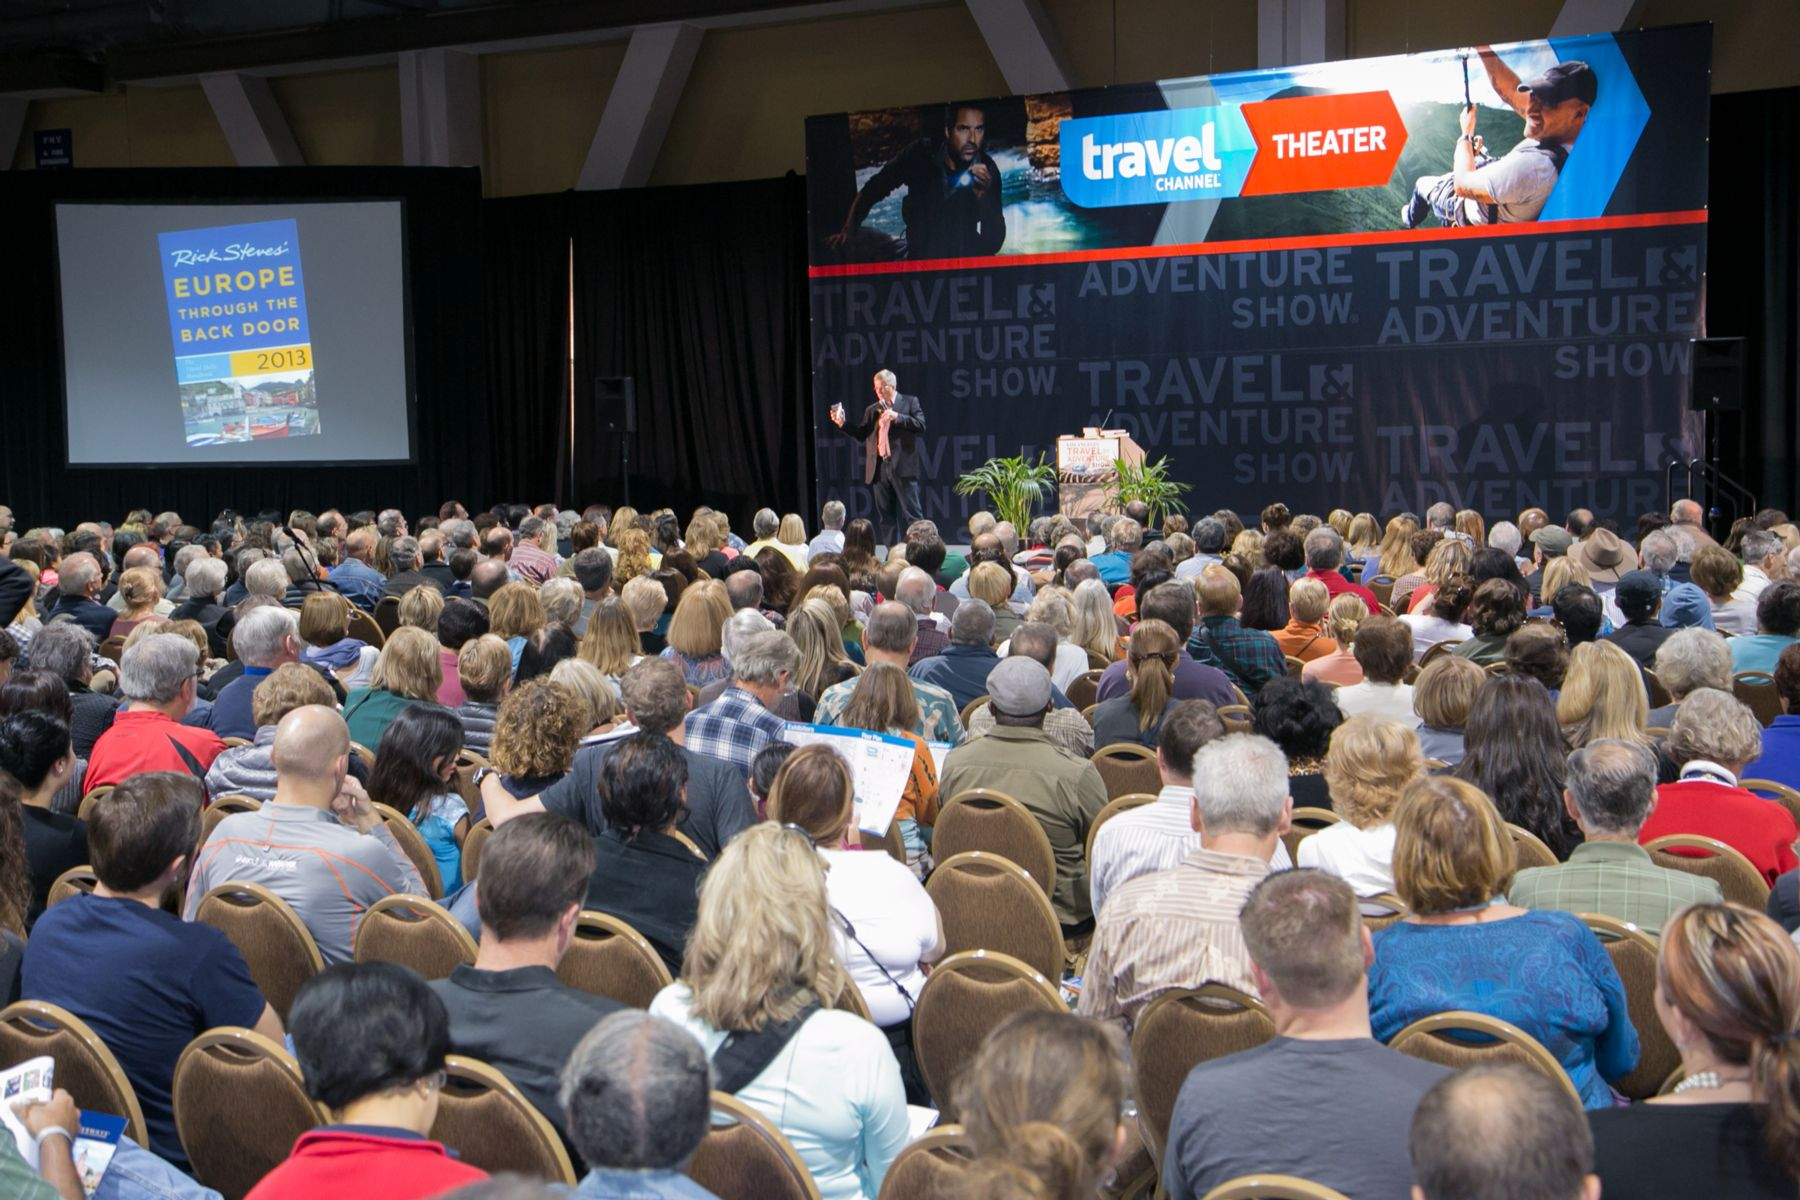 San Diego Travel & Adventure Show - Top Things to Do in San Diego